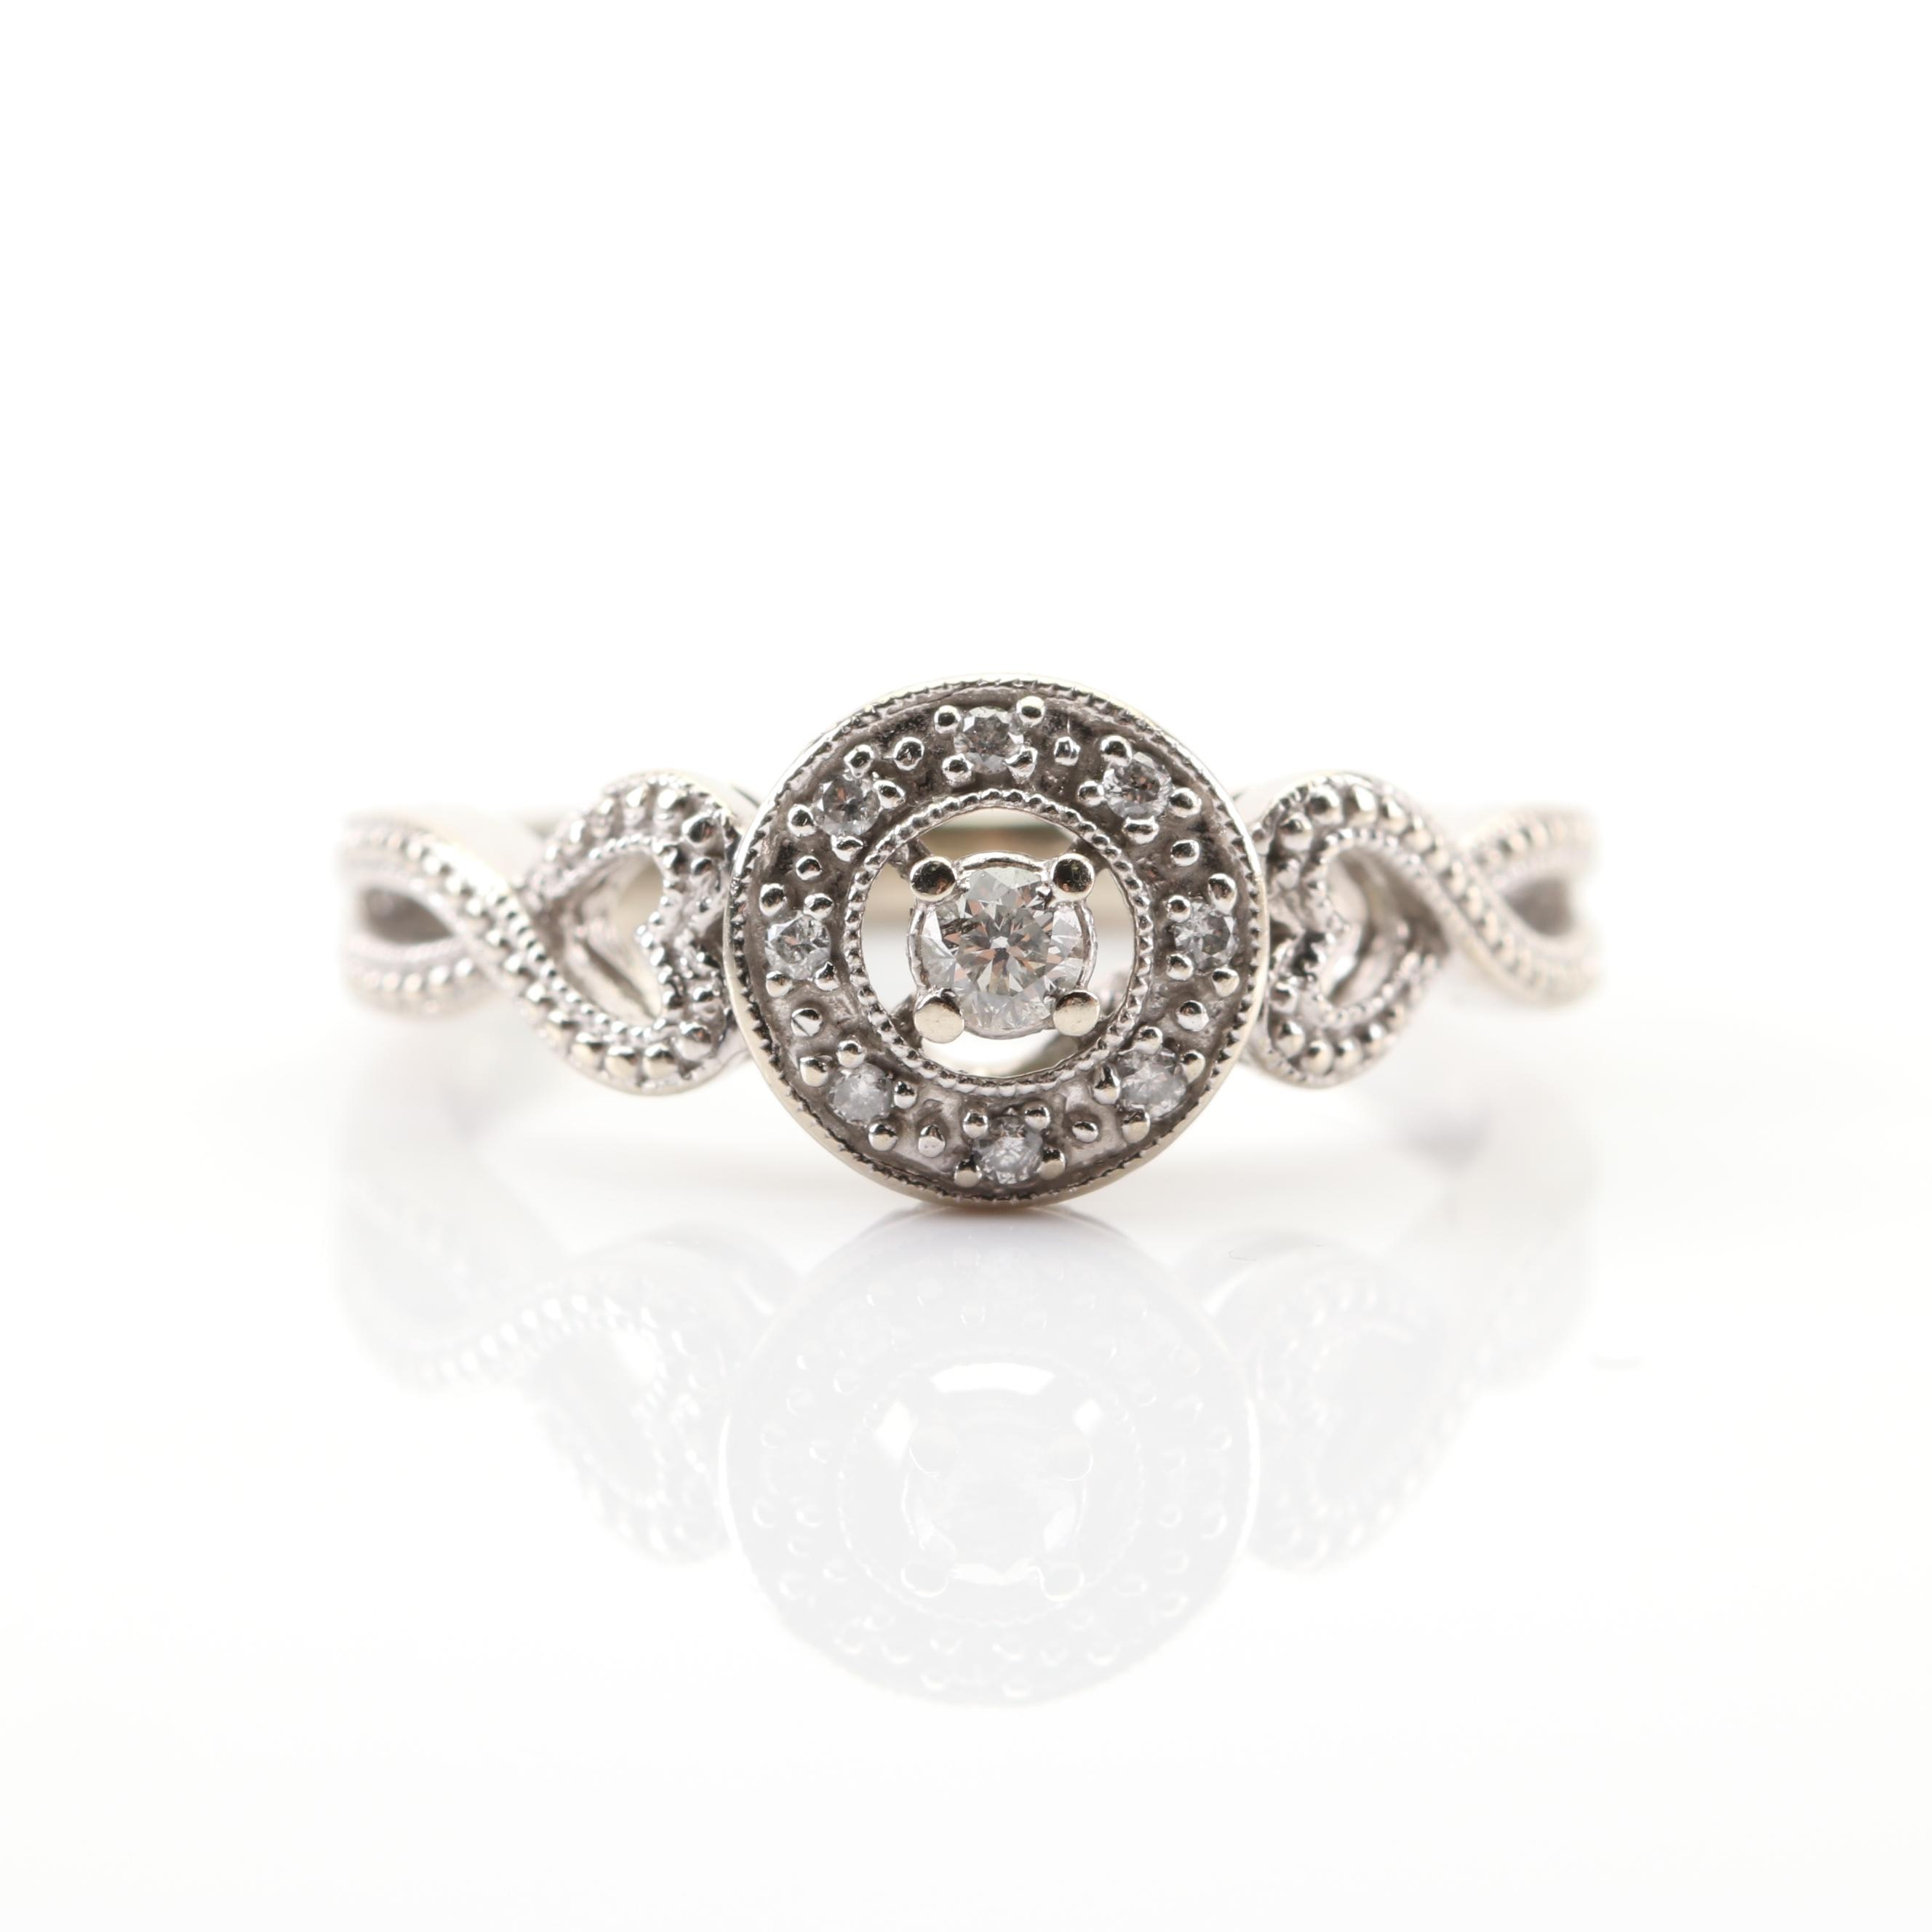 10K White Gold Diamond Halo Ring